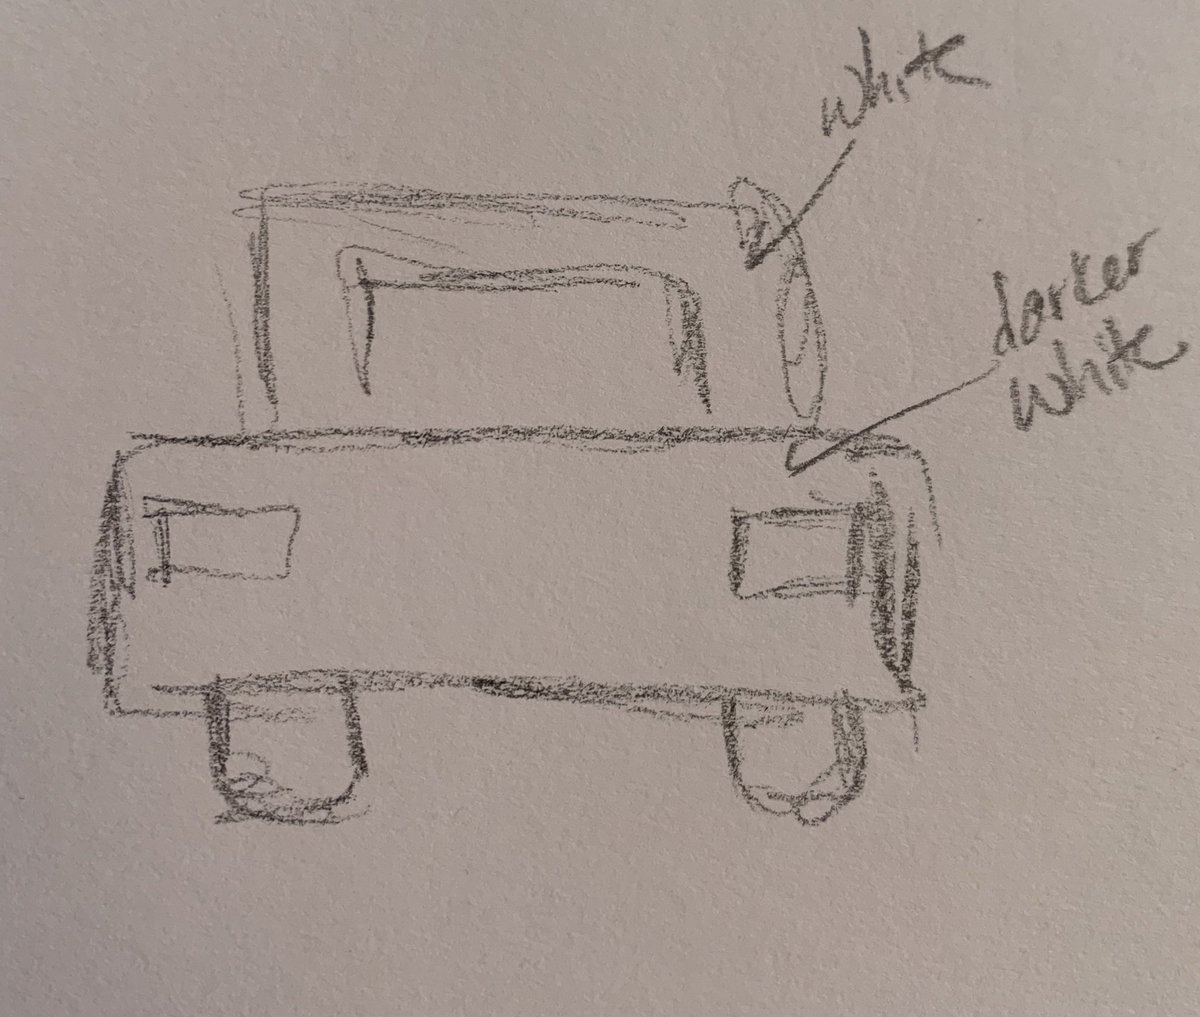 Ok I just drew the car from memory. It is definitely more accurate https://t.co/WRS9QQTpP8